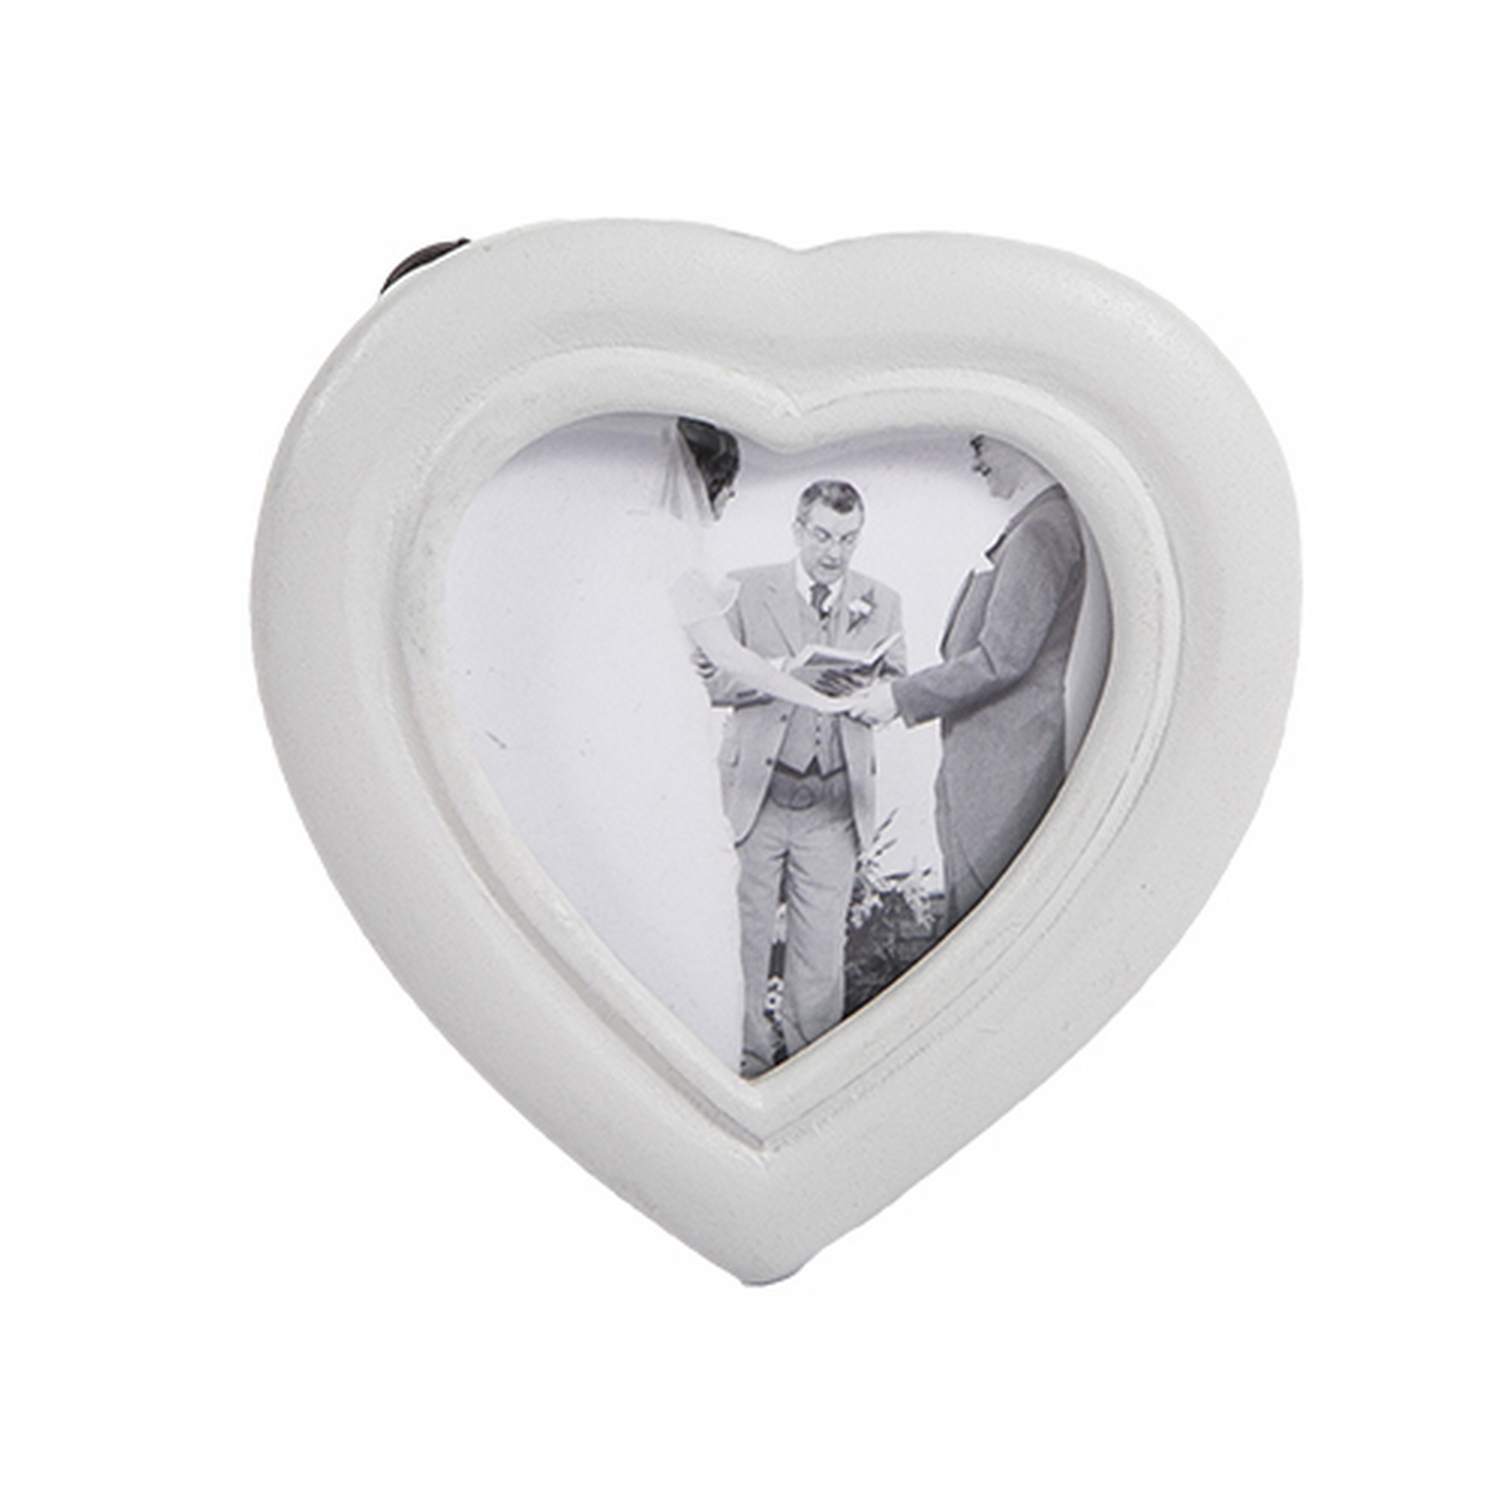 4x Light Tonal Heart Shaped Photo Holder Napkin Ring